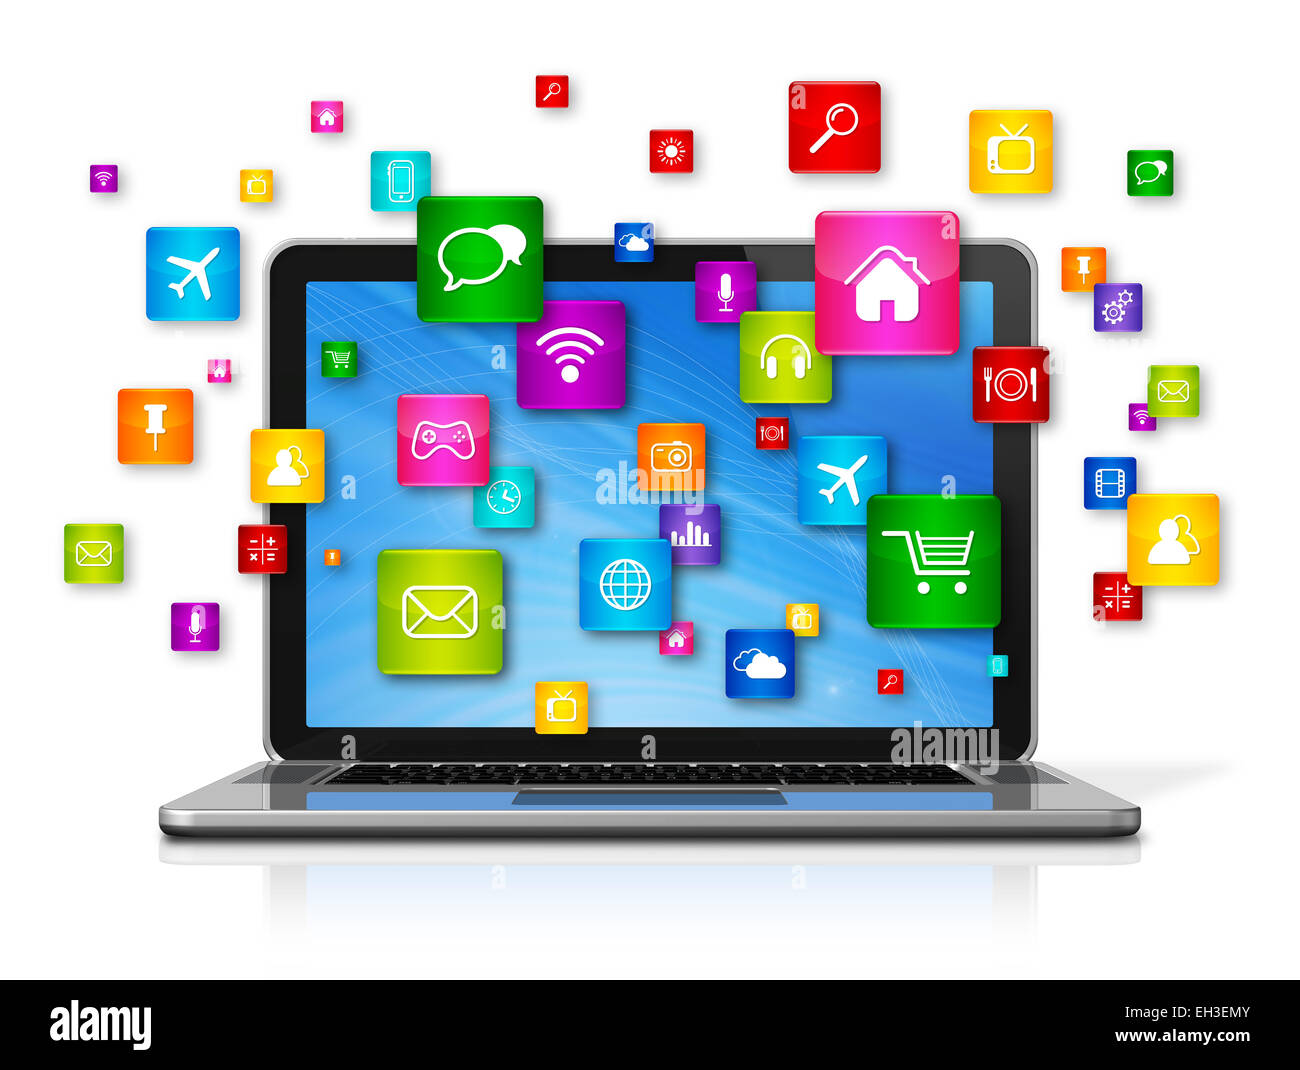 3d laptop computer with flying apps icons - isolated on white stock